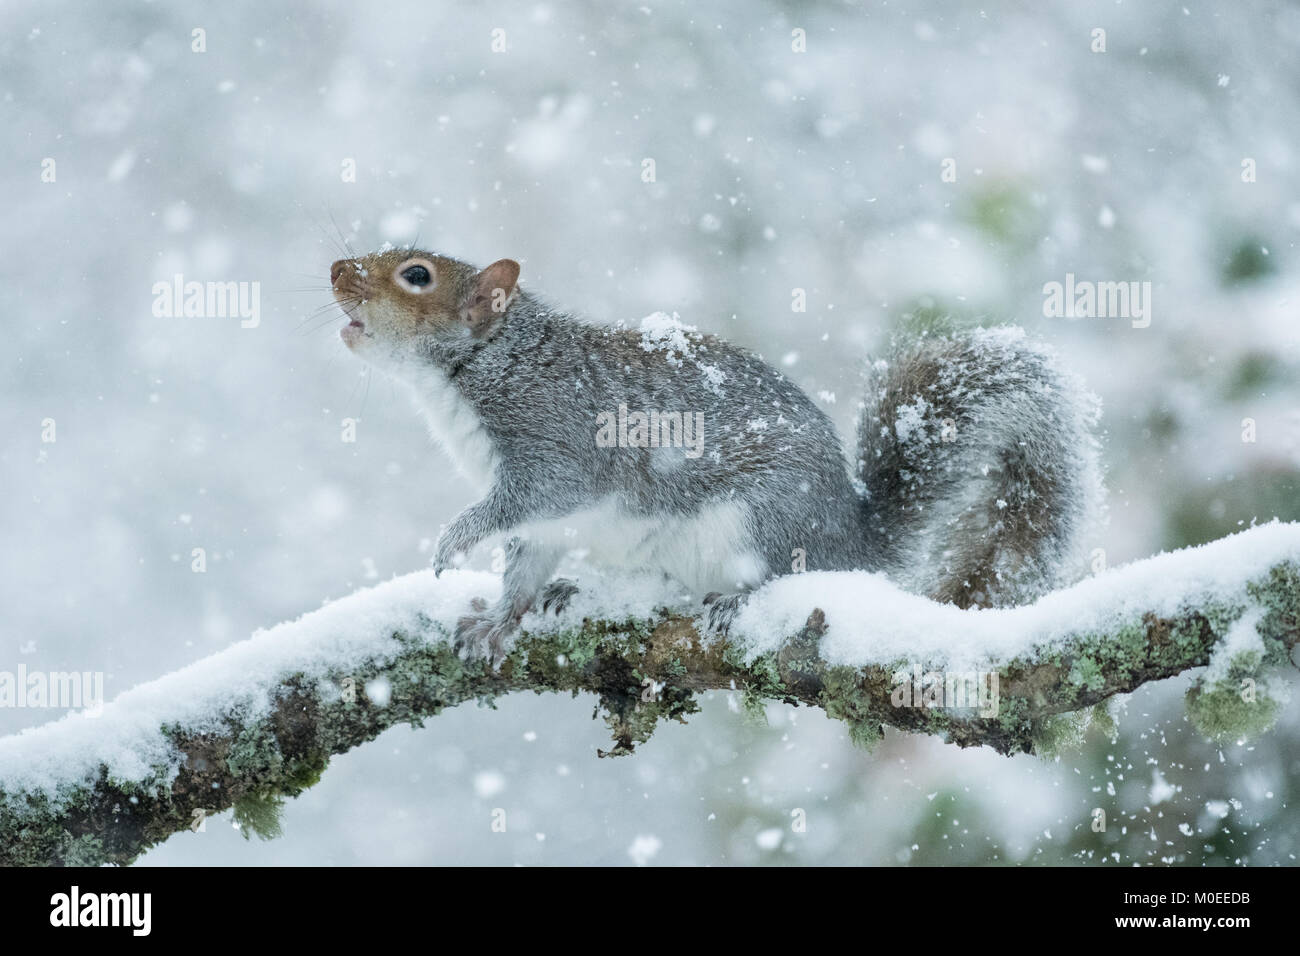 Killearn, Stirlingshire, Scotland, UK - 21 January 2018: UK weather - a grey squirrel looking for food during a - Stock Image